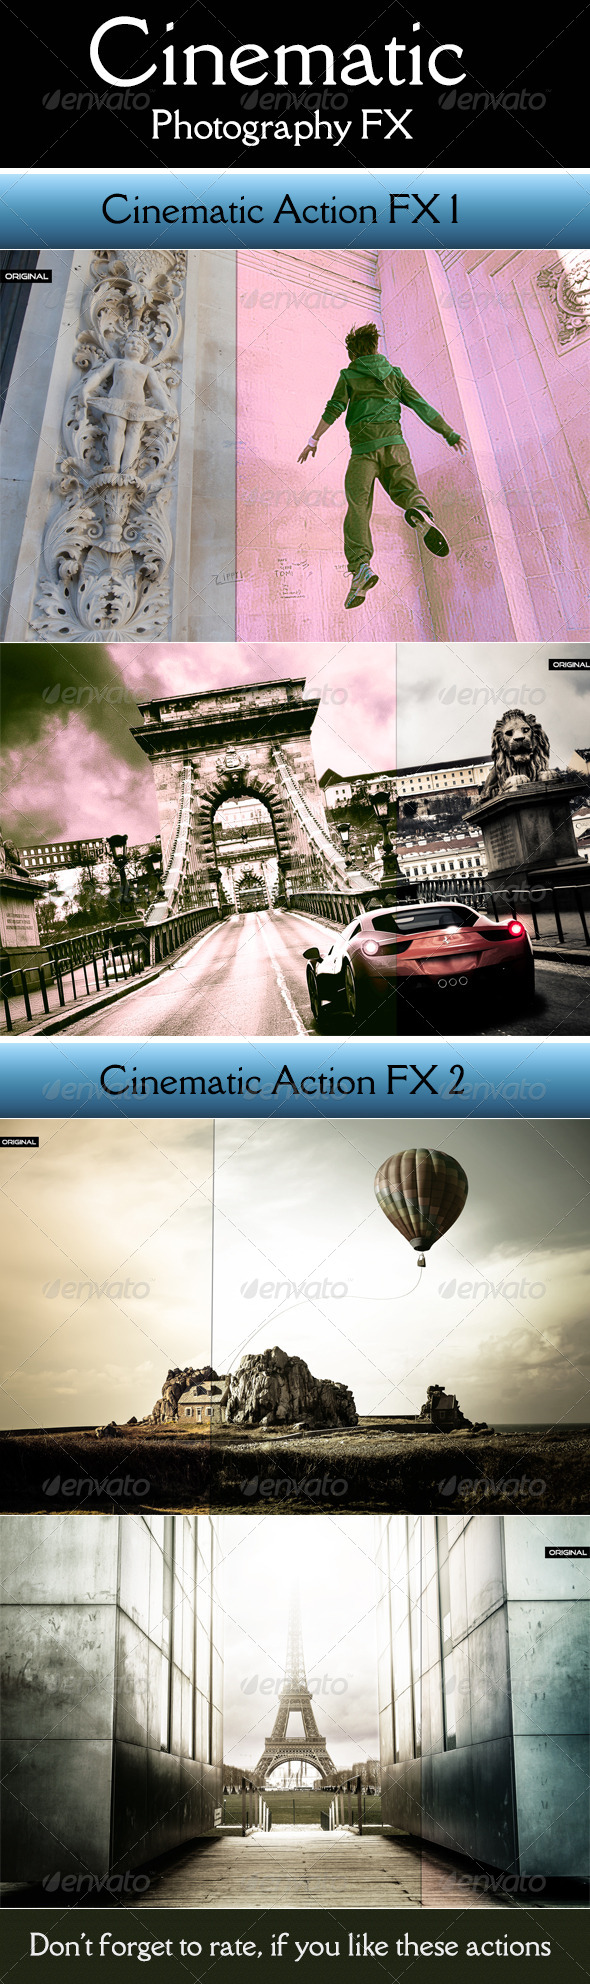 GraphicRiver Cinematic Photography FX 6056379